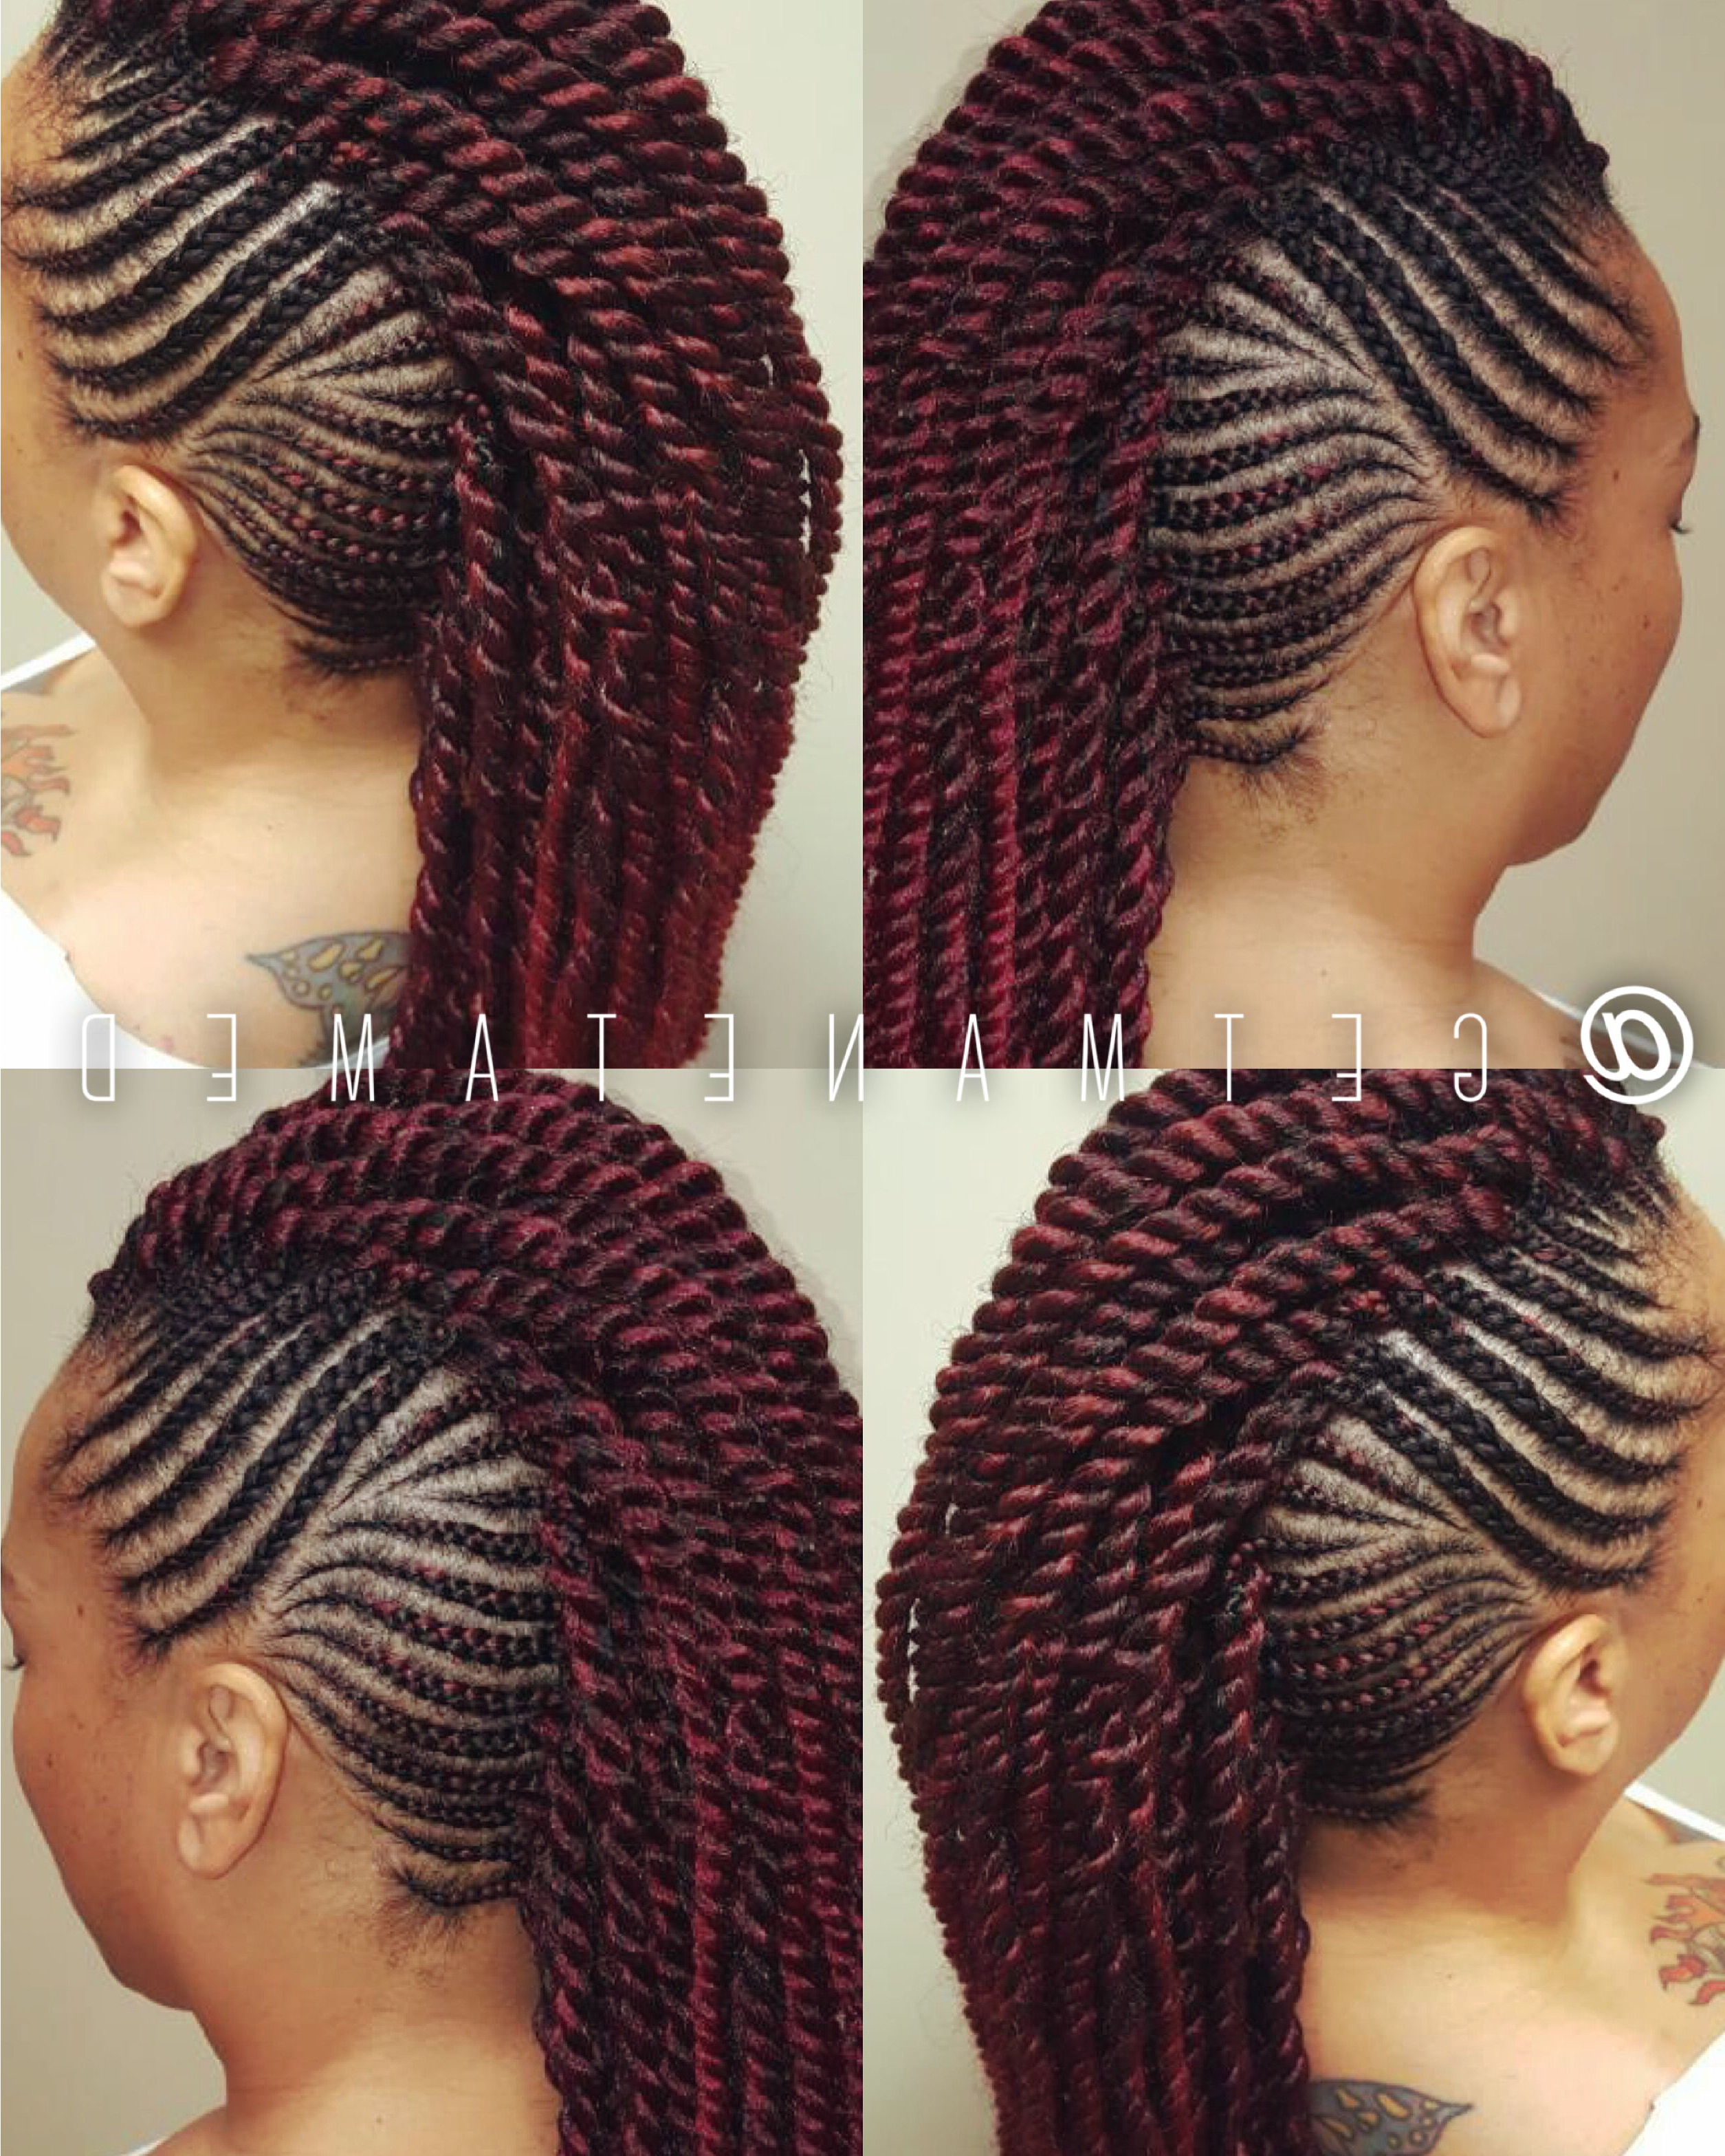 Hair Styles (View 9 of 20)